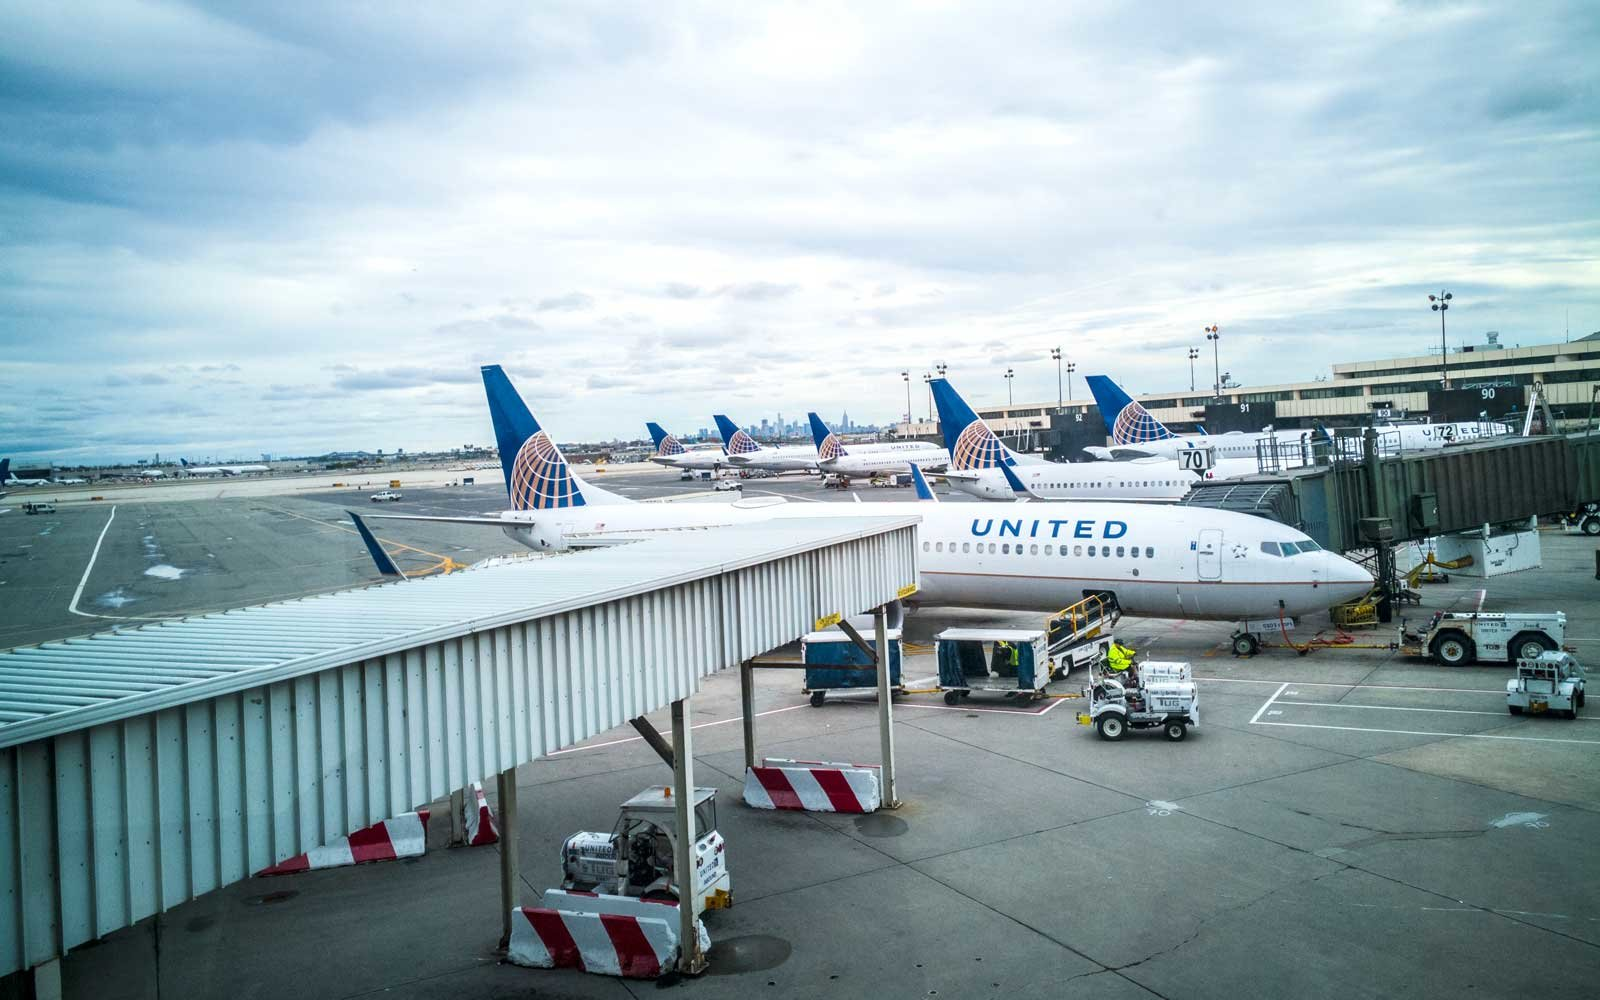 United Airlines planes at Newark International Airport